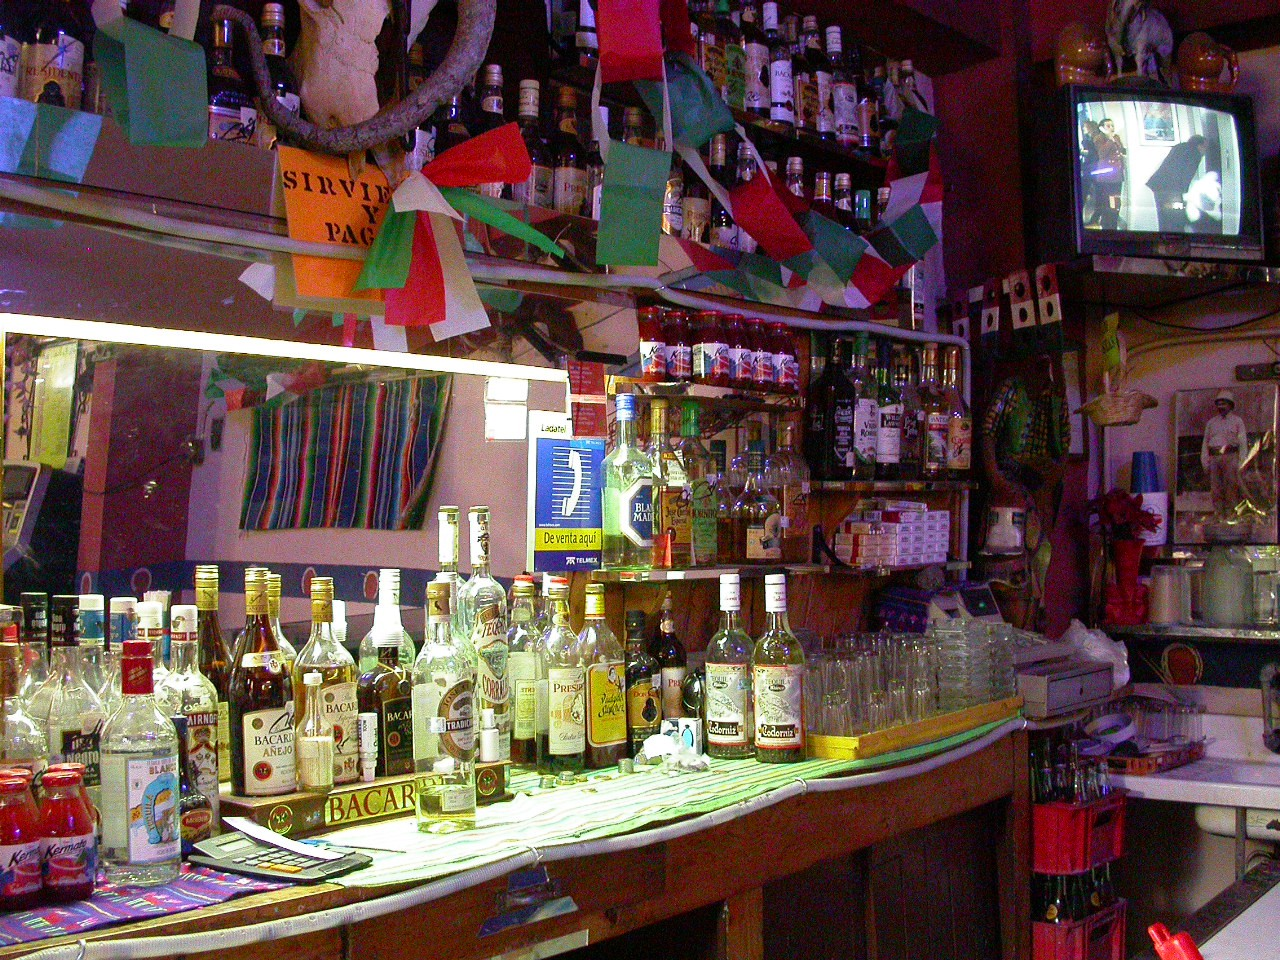 a bar stocked with liquor bottles